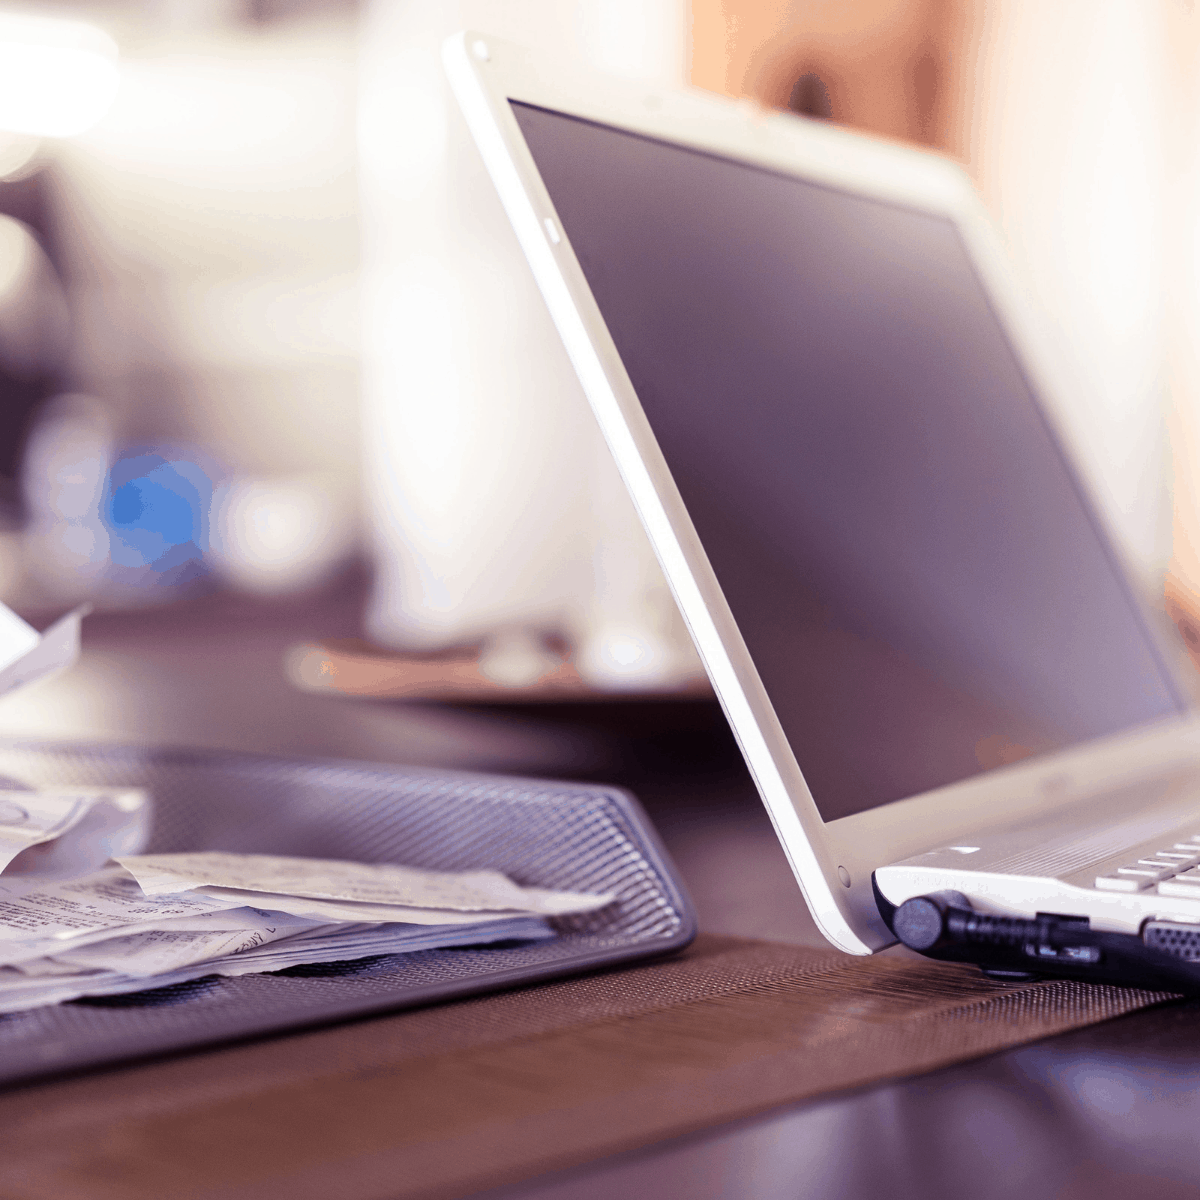 business receipts and laptop